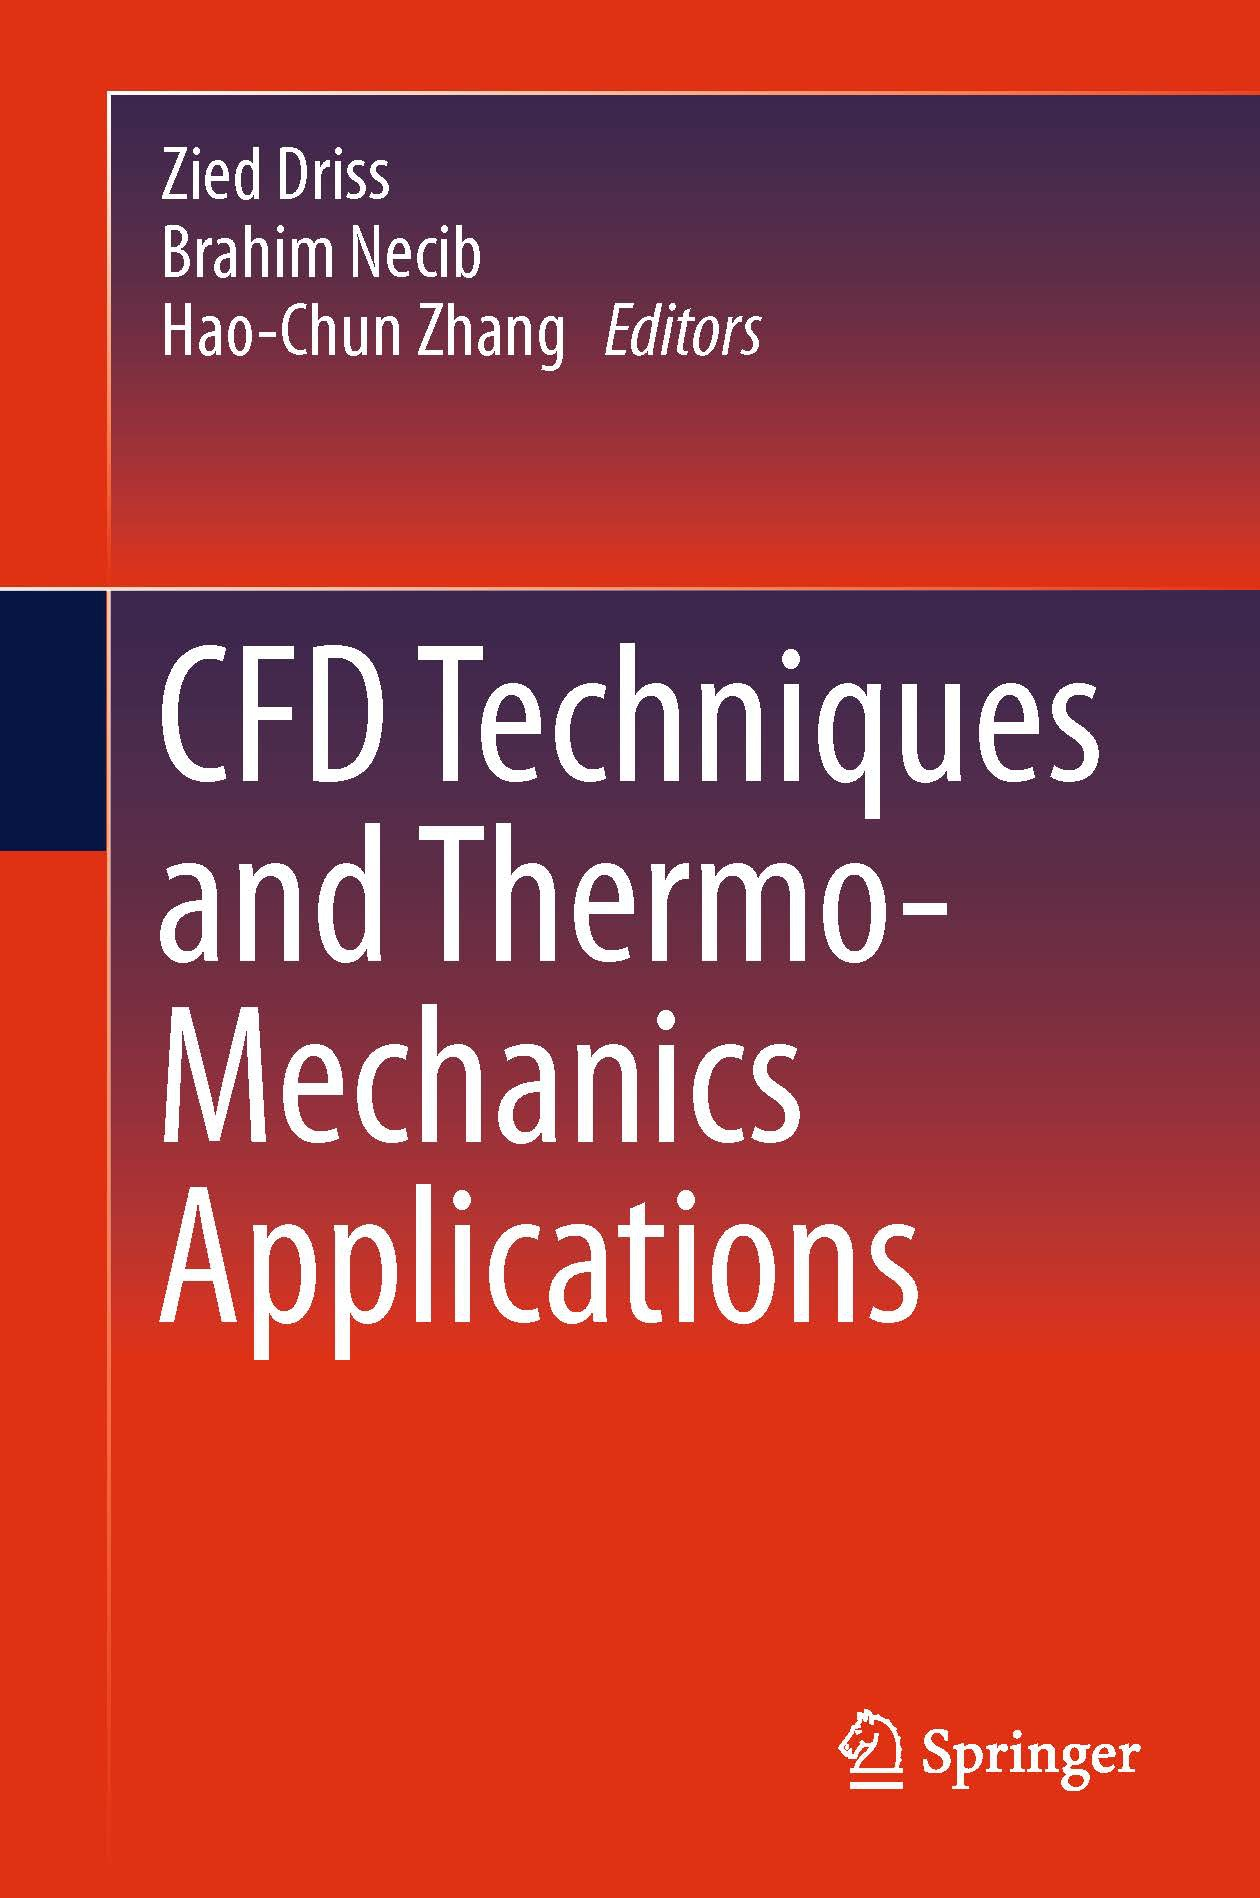 Driss, Zied - CFD Techniques and Thermo-Mechanics Applications, ebook